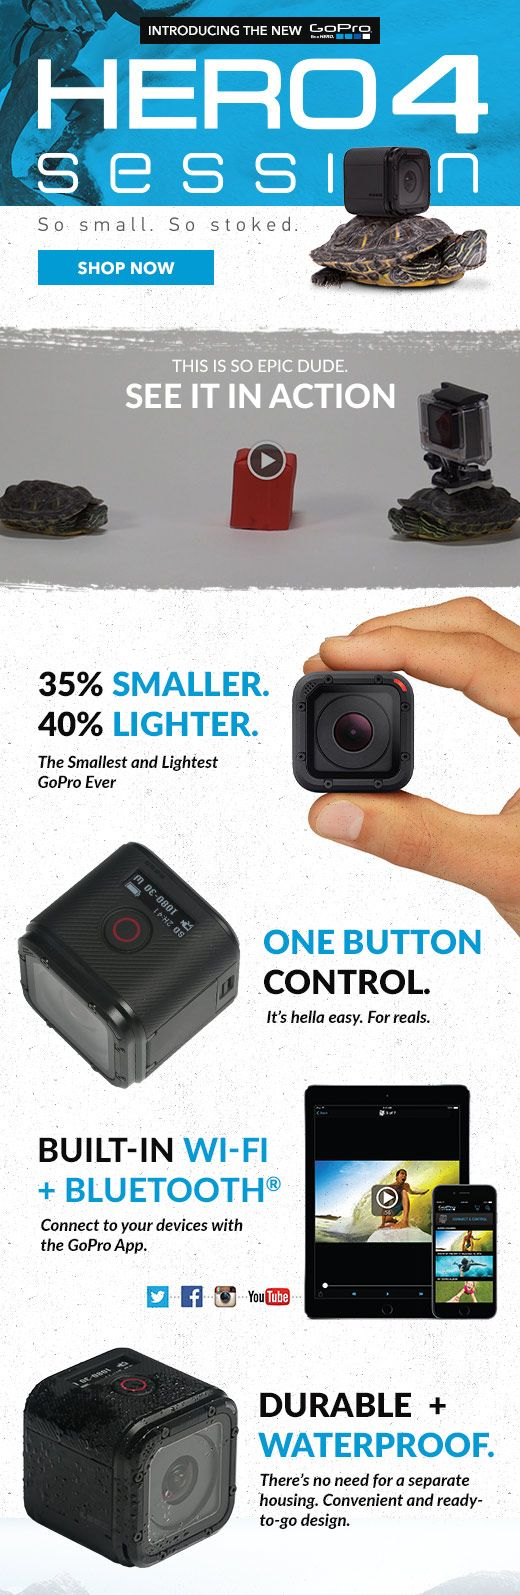 The all new GoPro Hero4 Session is perfect for your adventures. At 35% smaller and 40% lighter than a Hero4, the session is perfect for lightweight, on the go adventure capturing. So small. So stoked.